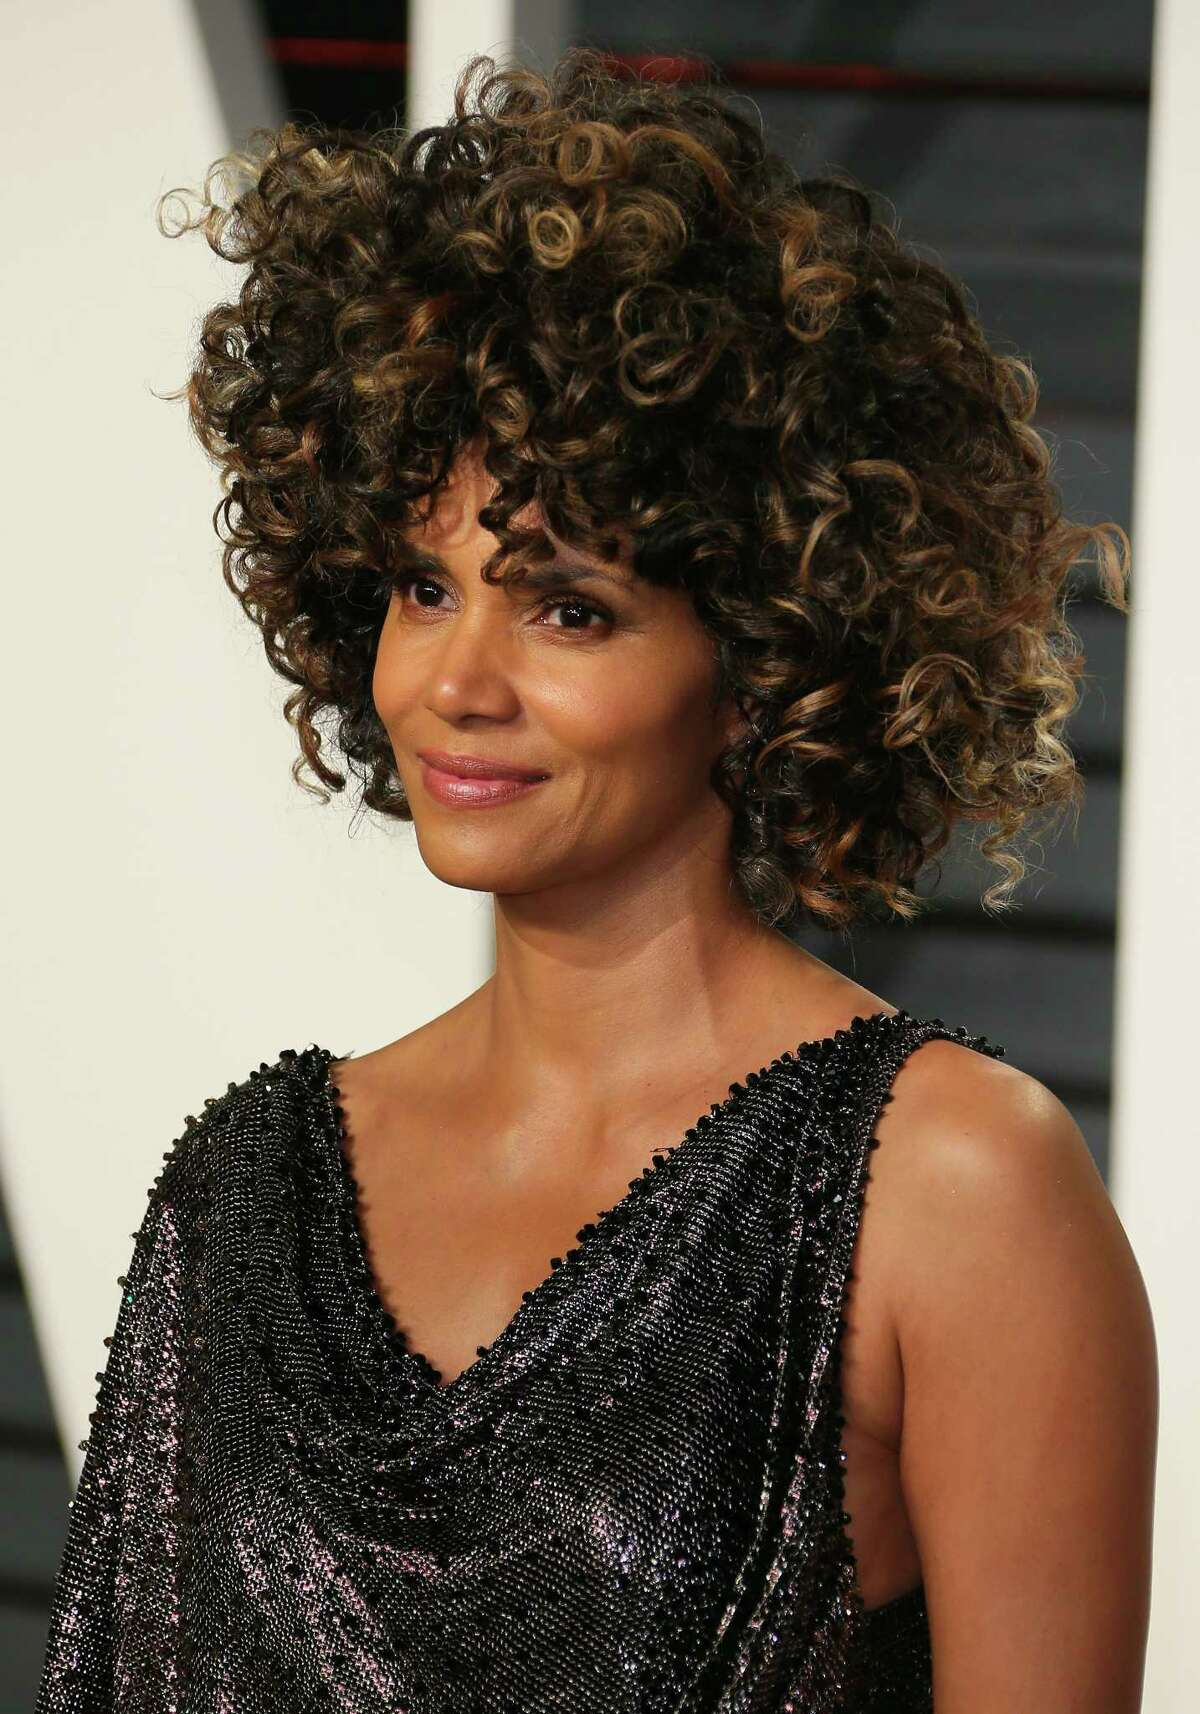 Halle Berry wearing an asymmetrical Afro, according to her hairstylist.